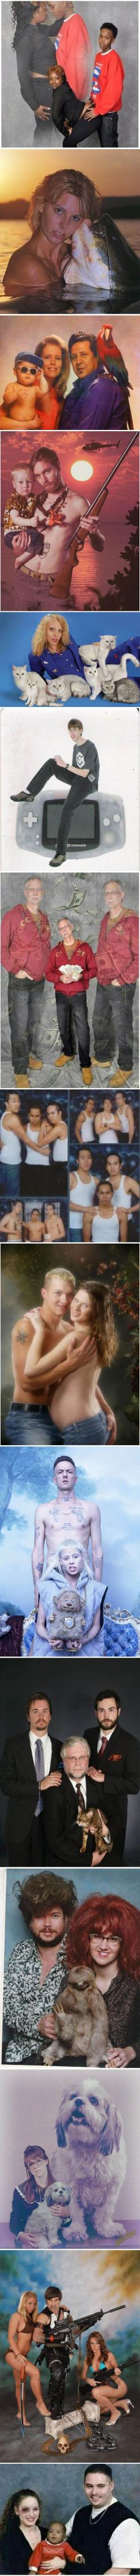 I'm dying. Why?: Wtf Portraits, Ummm What, Picture, Giggle, Cant, Awkward Photos, Awkward Family Photos